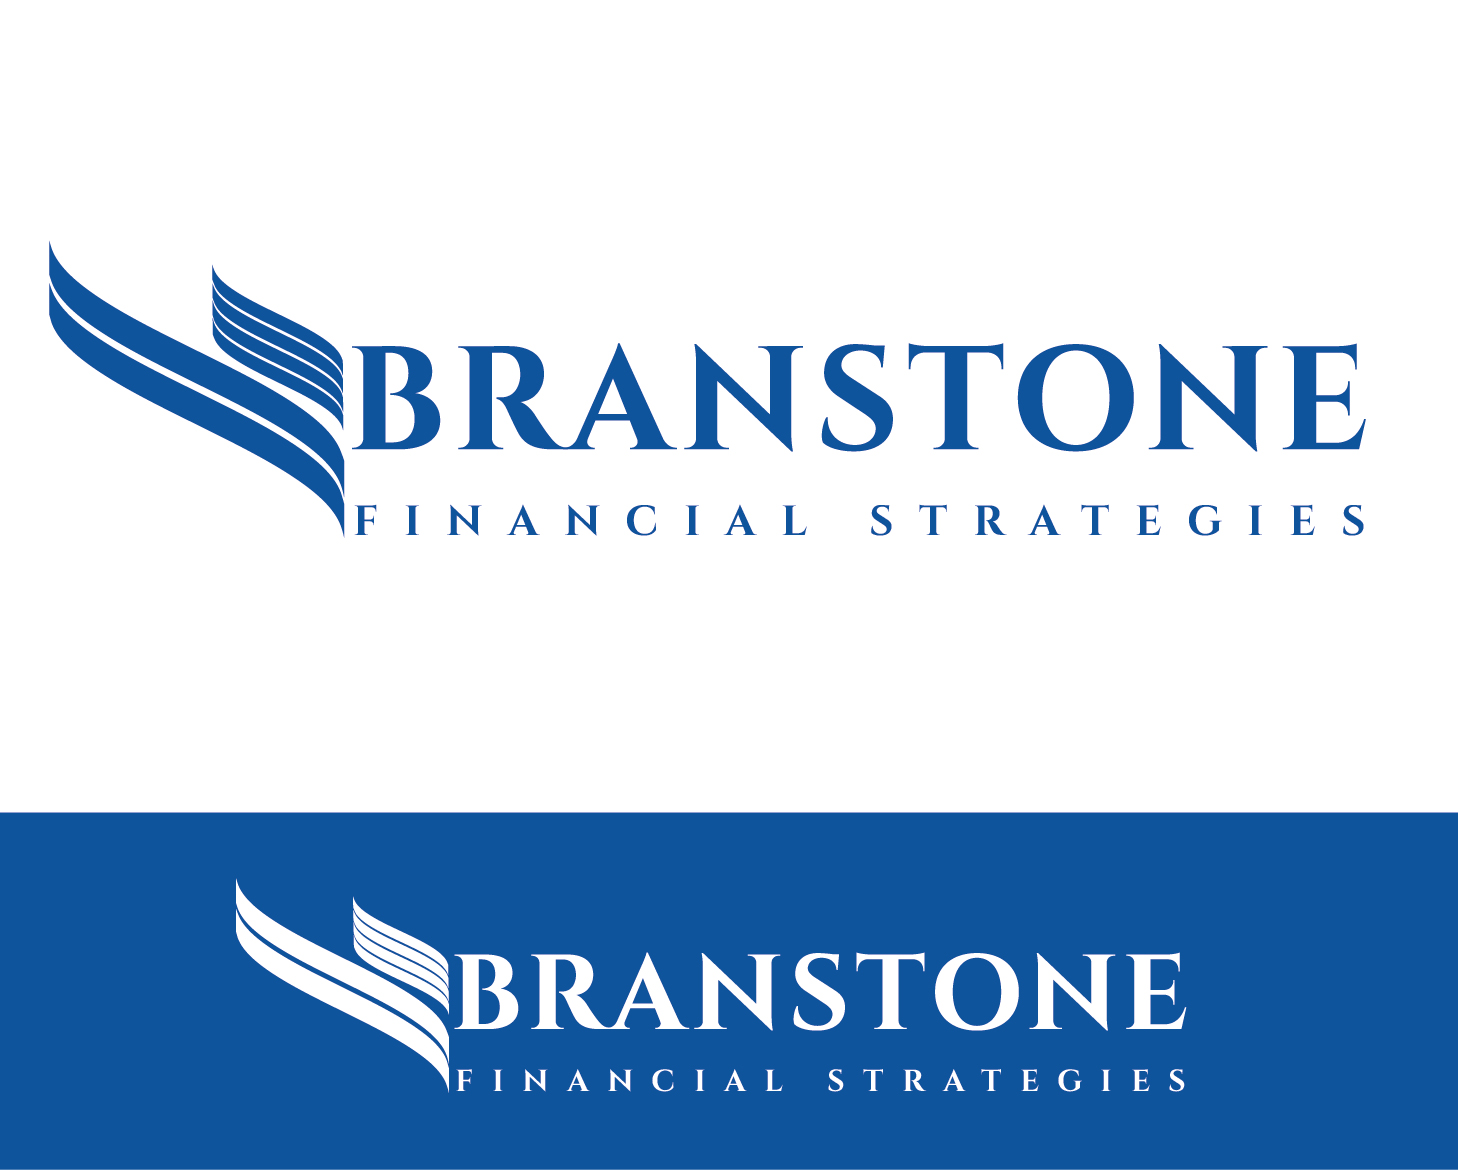 Logo Design by VENTSISLAV KOVACHEV - Entry No. 107 in the Logo Design Contest Inspiring Logo Design for Branstone Financial Strategies.